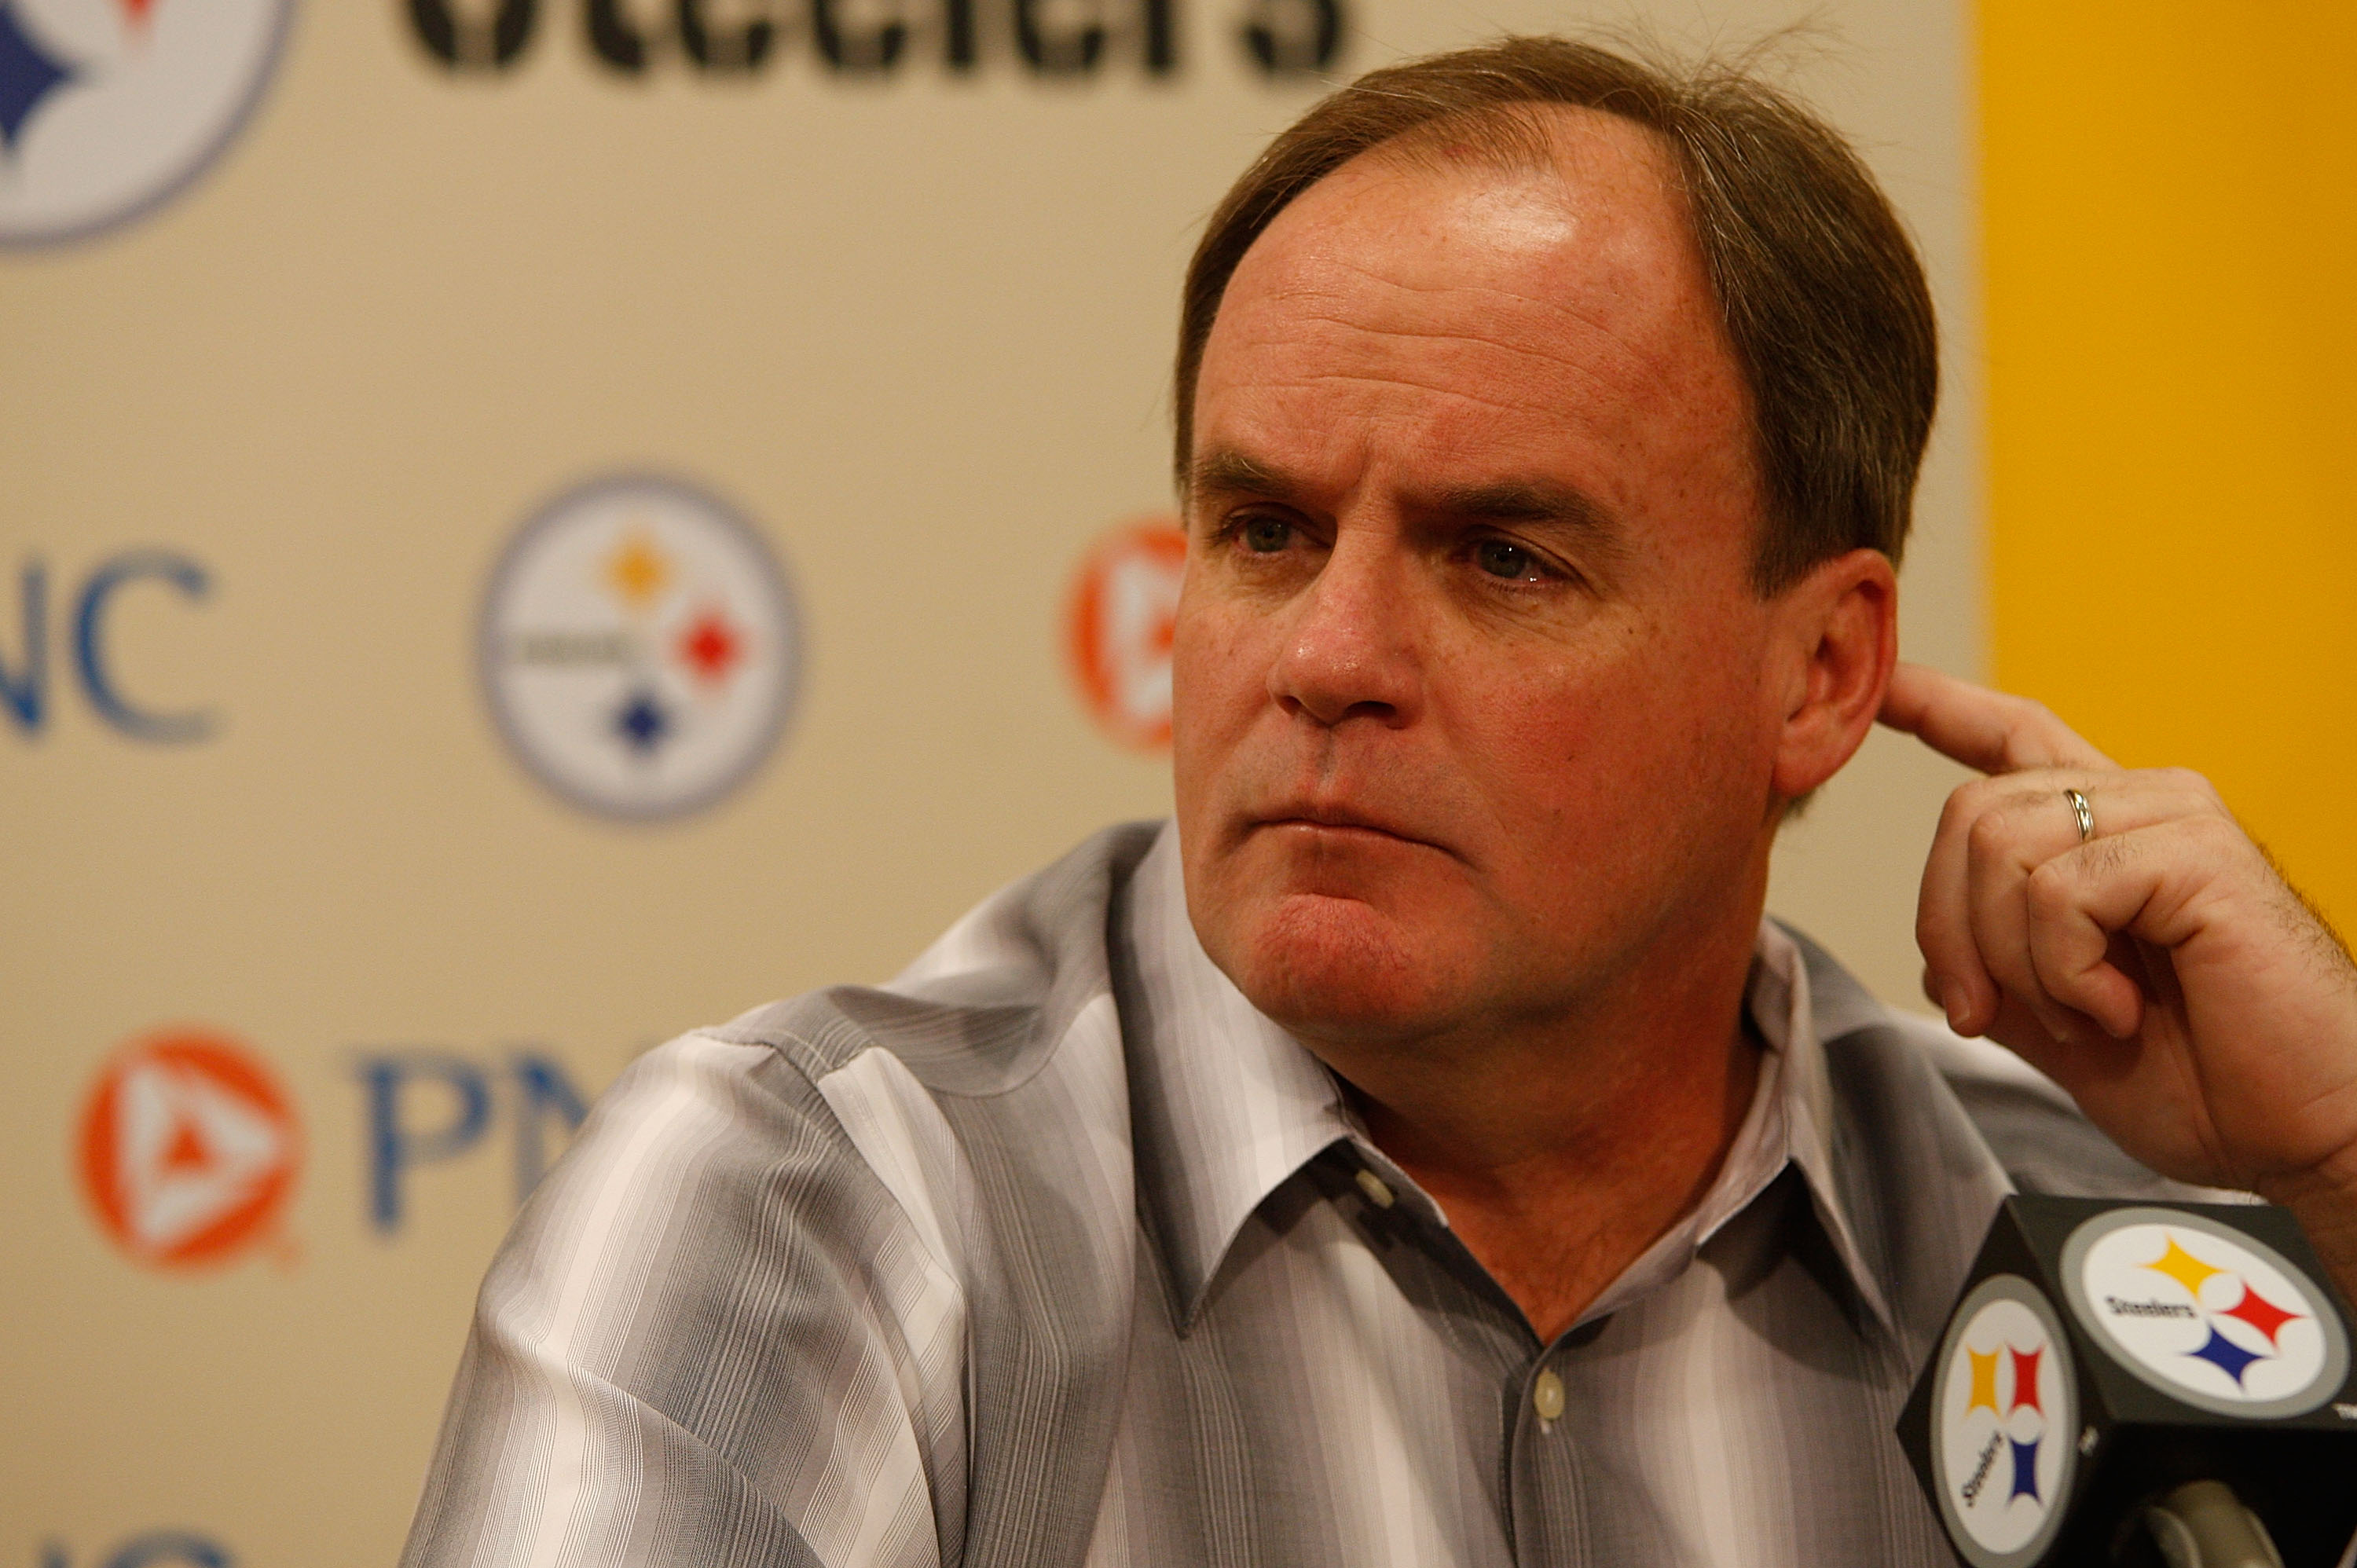 PITTSBURGH - APRIL 19:  Director of Football Operations Kevin Colbert of the Pittsburgh Steelers speaks during a press conference following practice on April 19, 2010 at the Pittsburgh Steelers South Side training facility in Pittsburgh, Pennsylvania.  (P